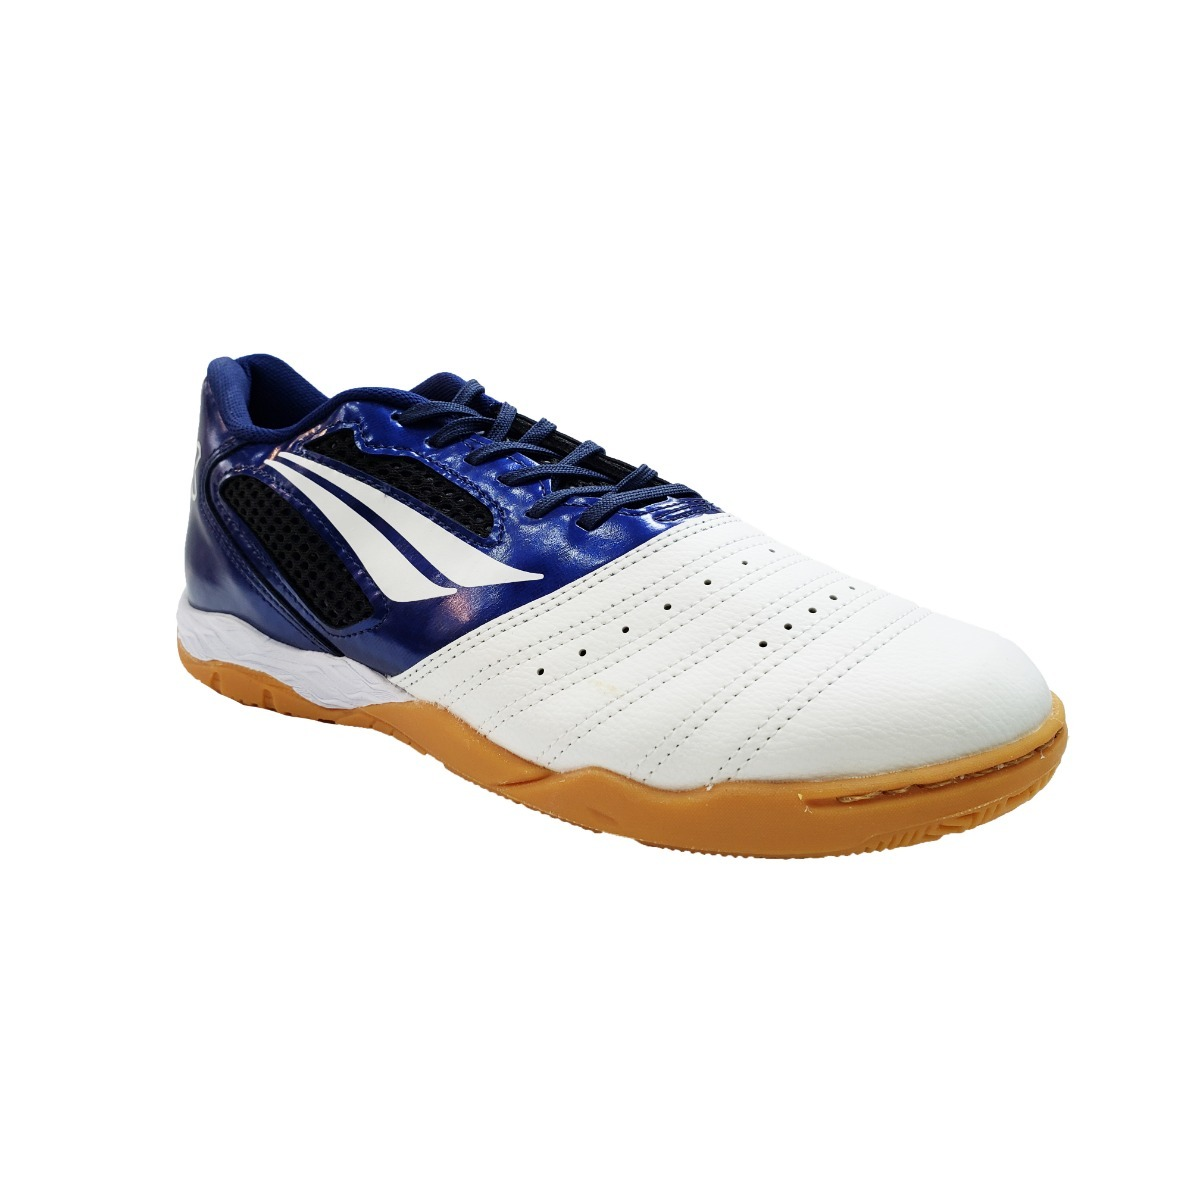 6d6a354af Botines Penalty Futsal Adulto Max 400 Vii - 124112 (1330) -   2.500 ...